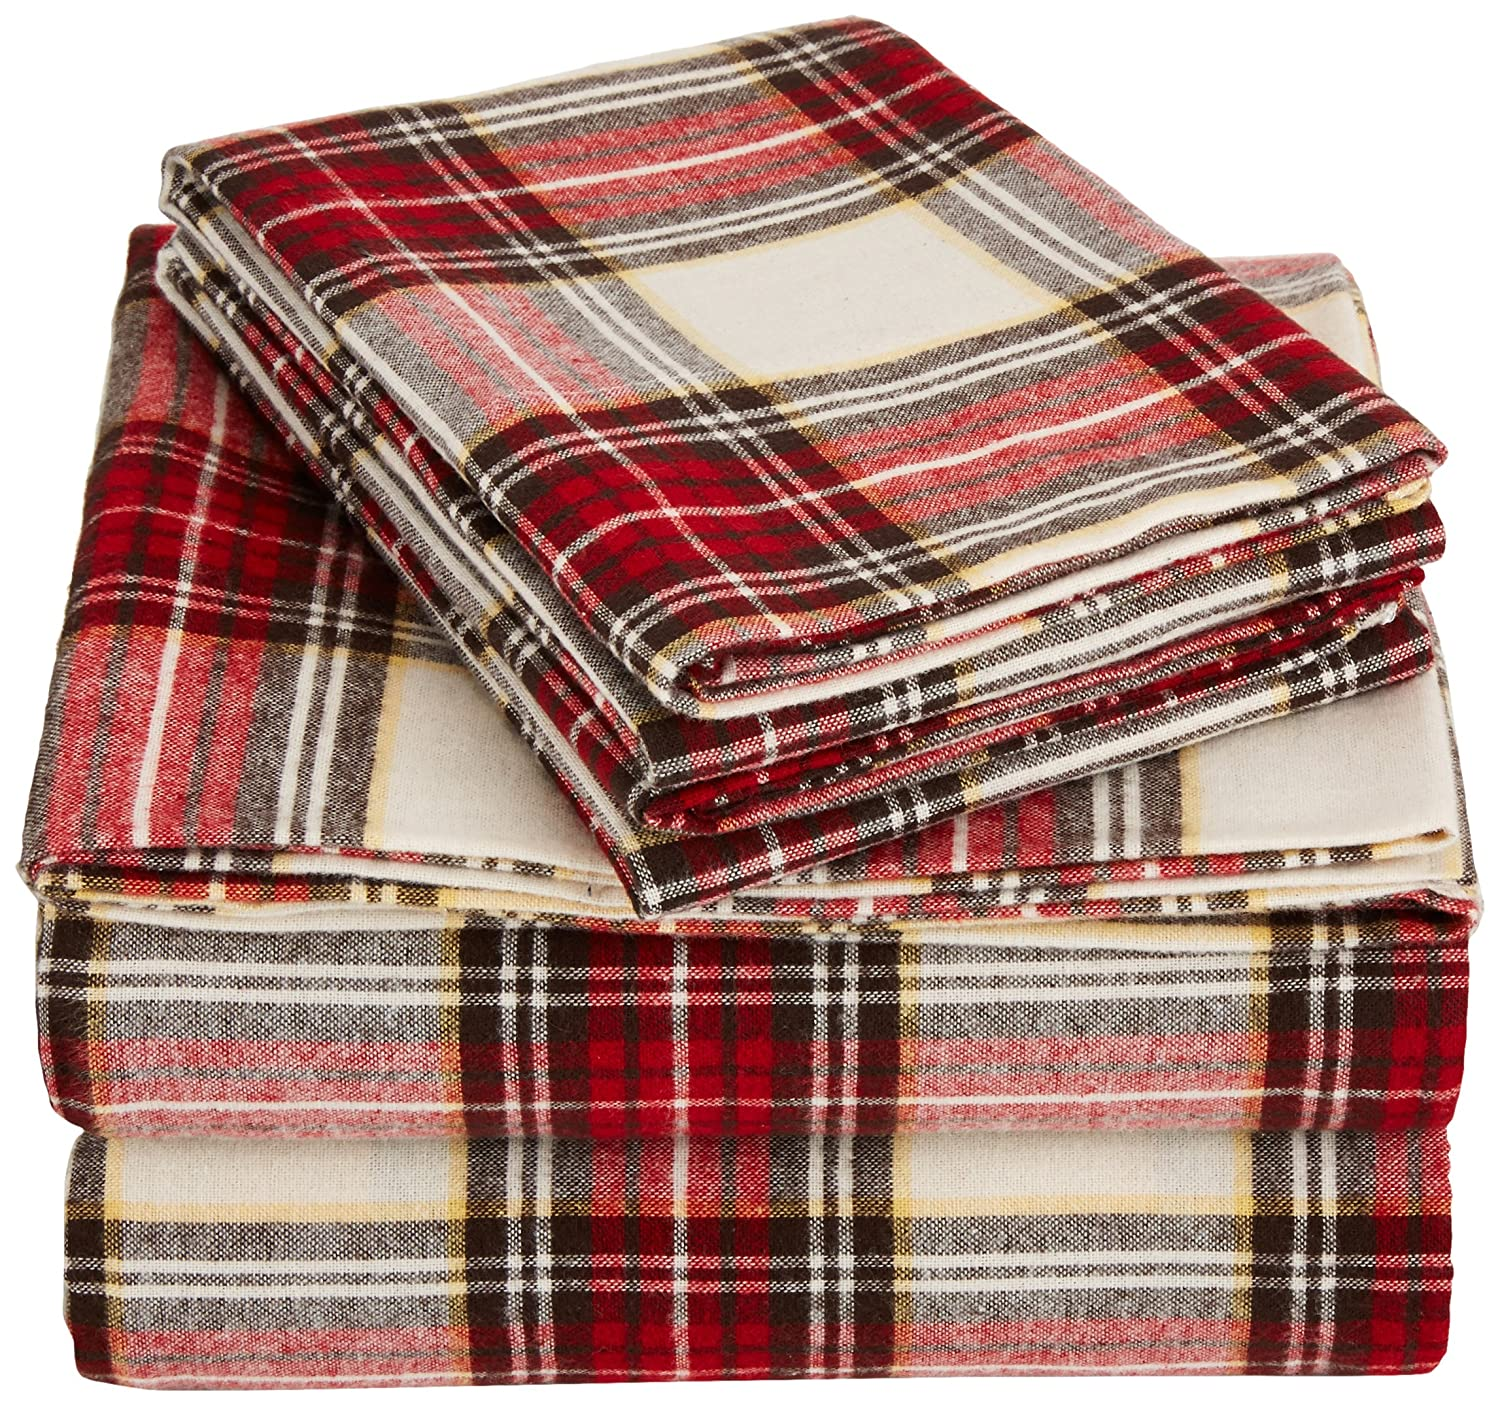 AmazonBasics Yarn-Dyed Lightweight Flannel Sheet Set - King, Cream/Red Plaid